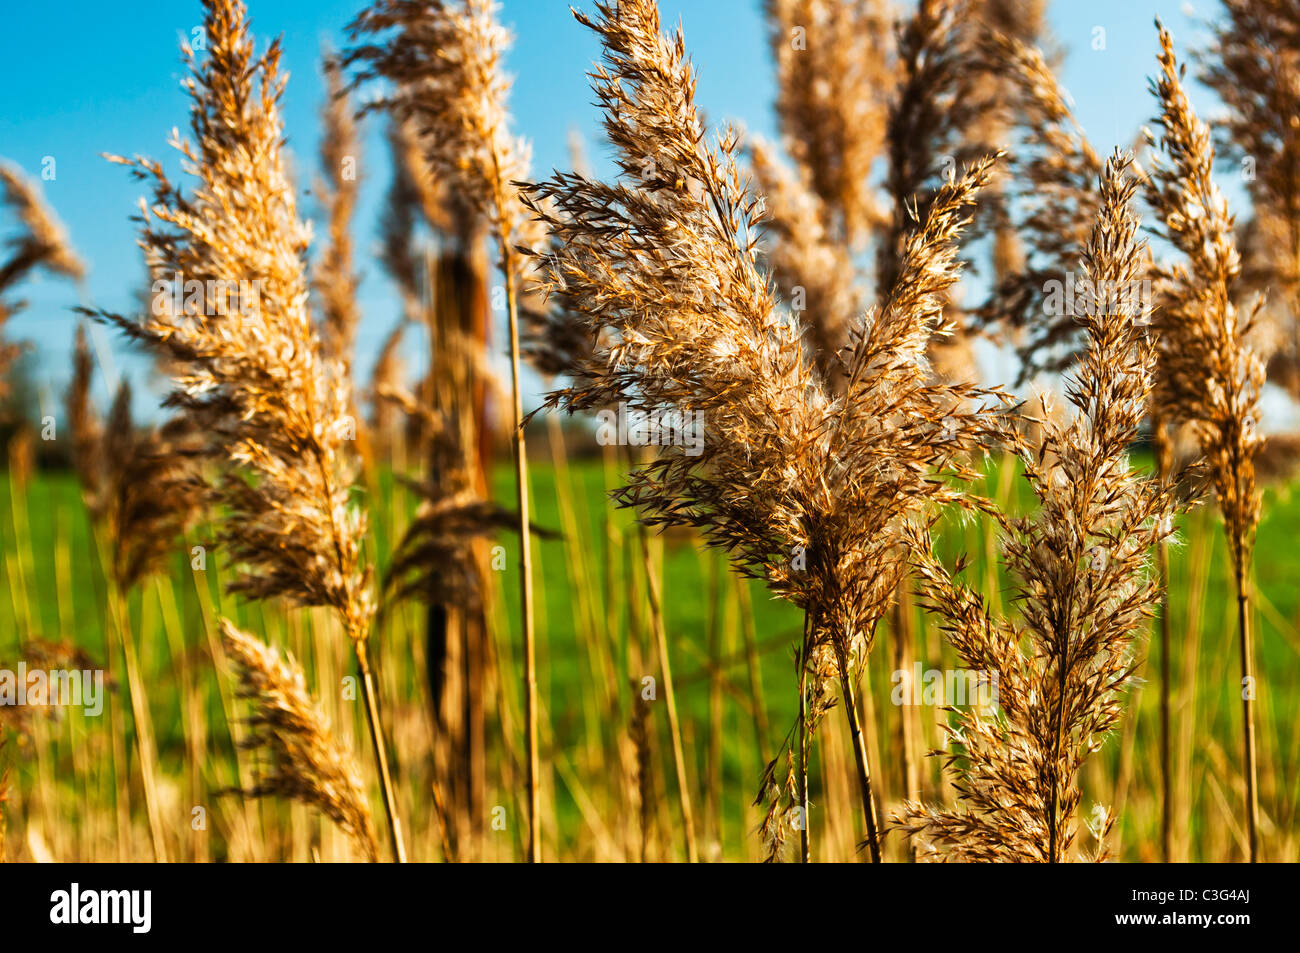 Grass seed heads - Stock Image